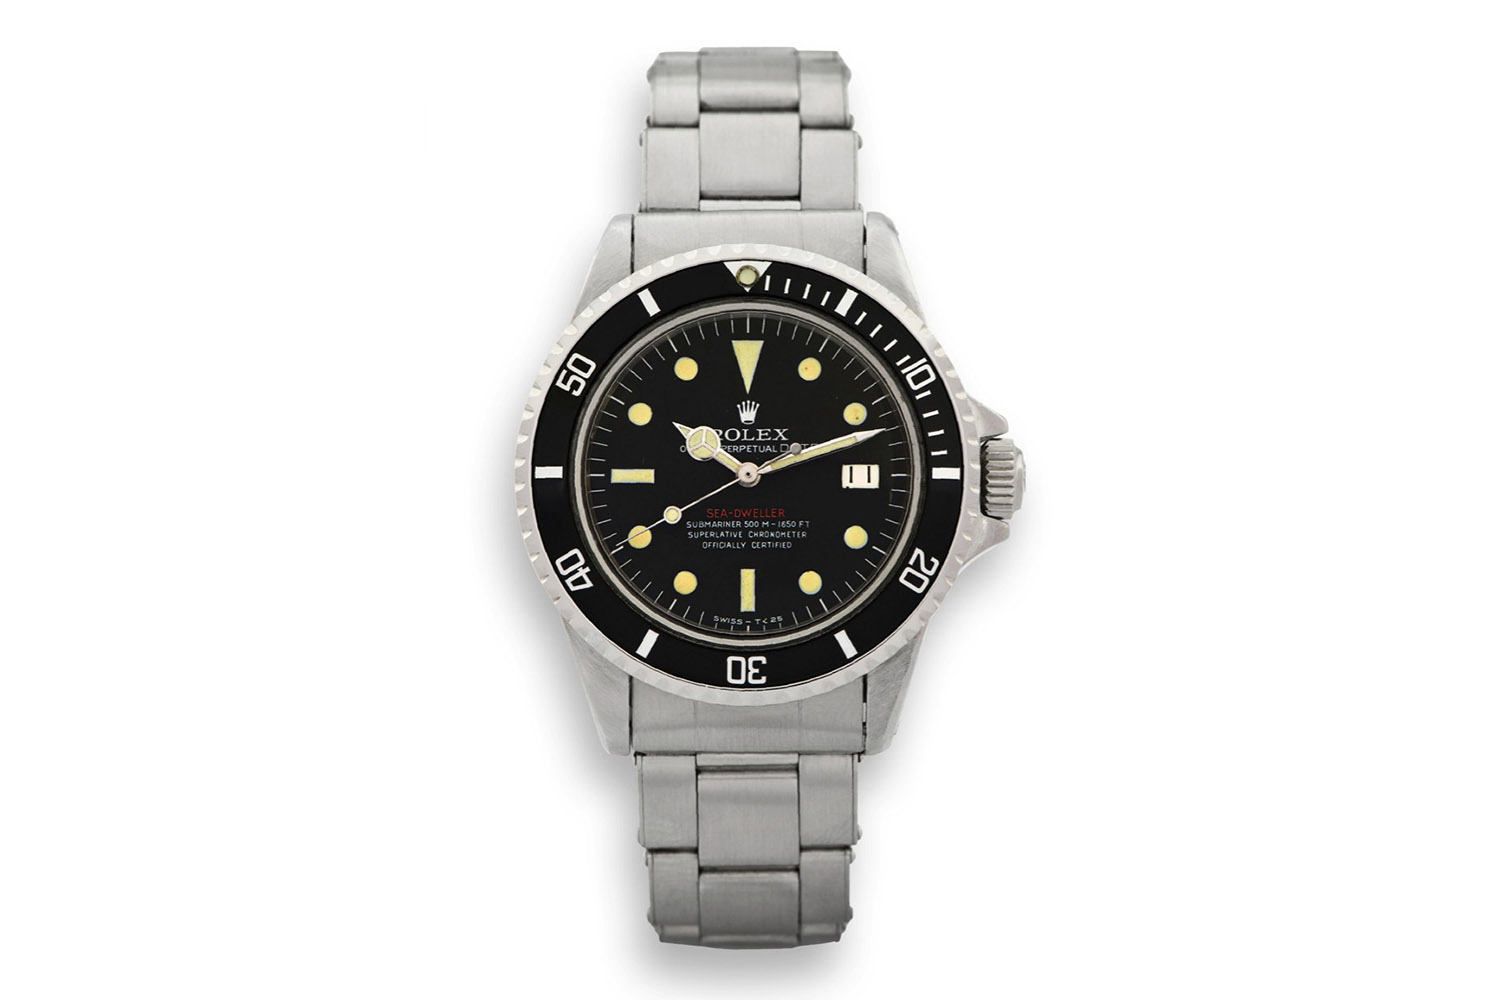 Rolex Sea-Dweller 1665 Prototype single red